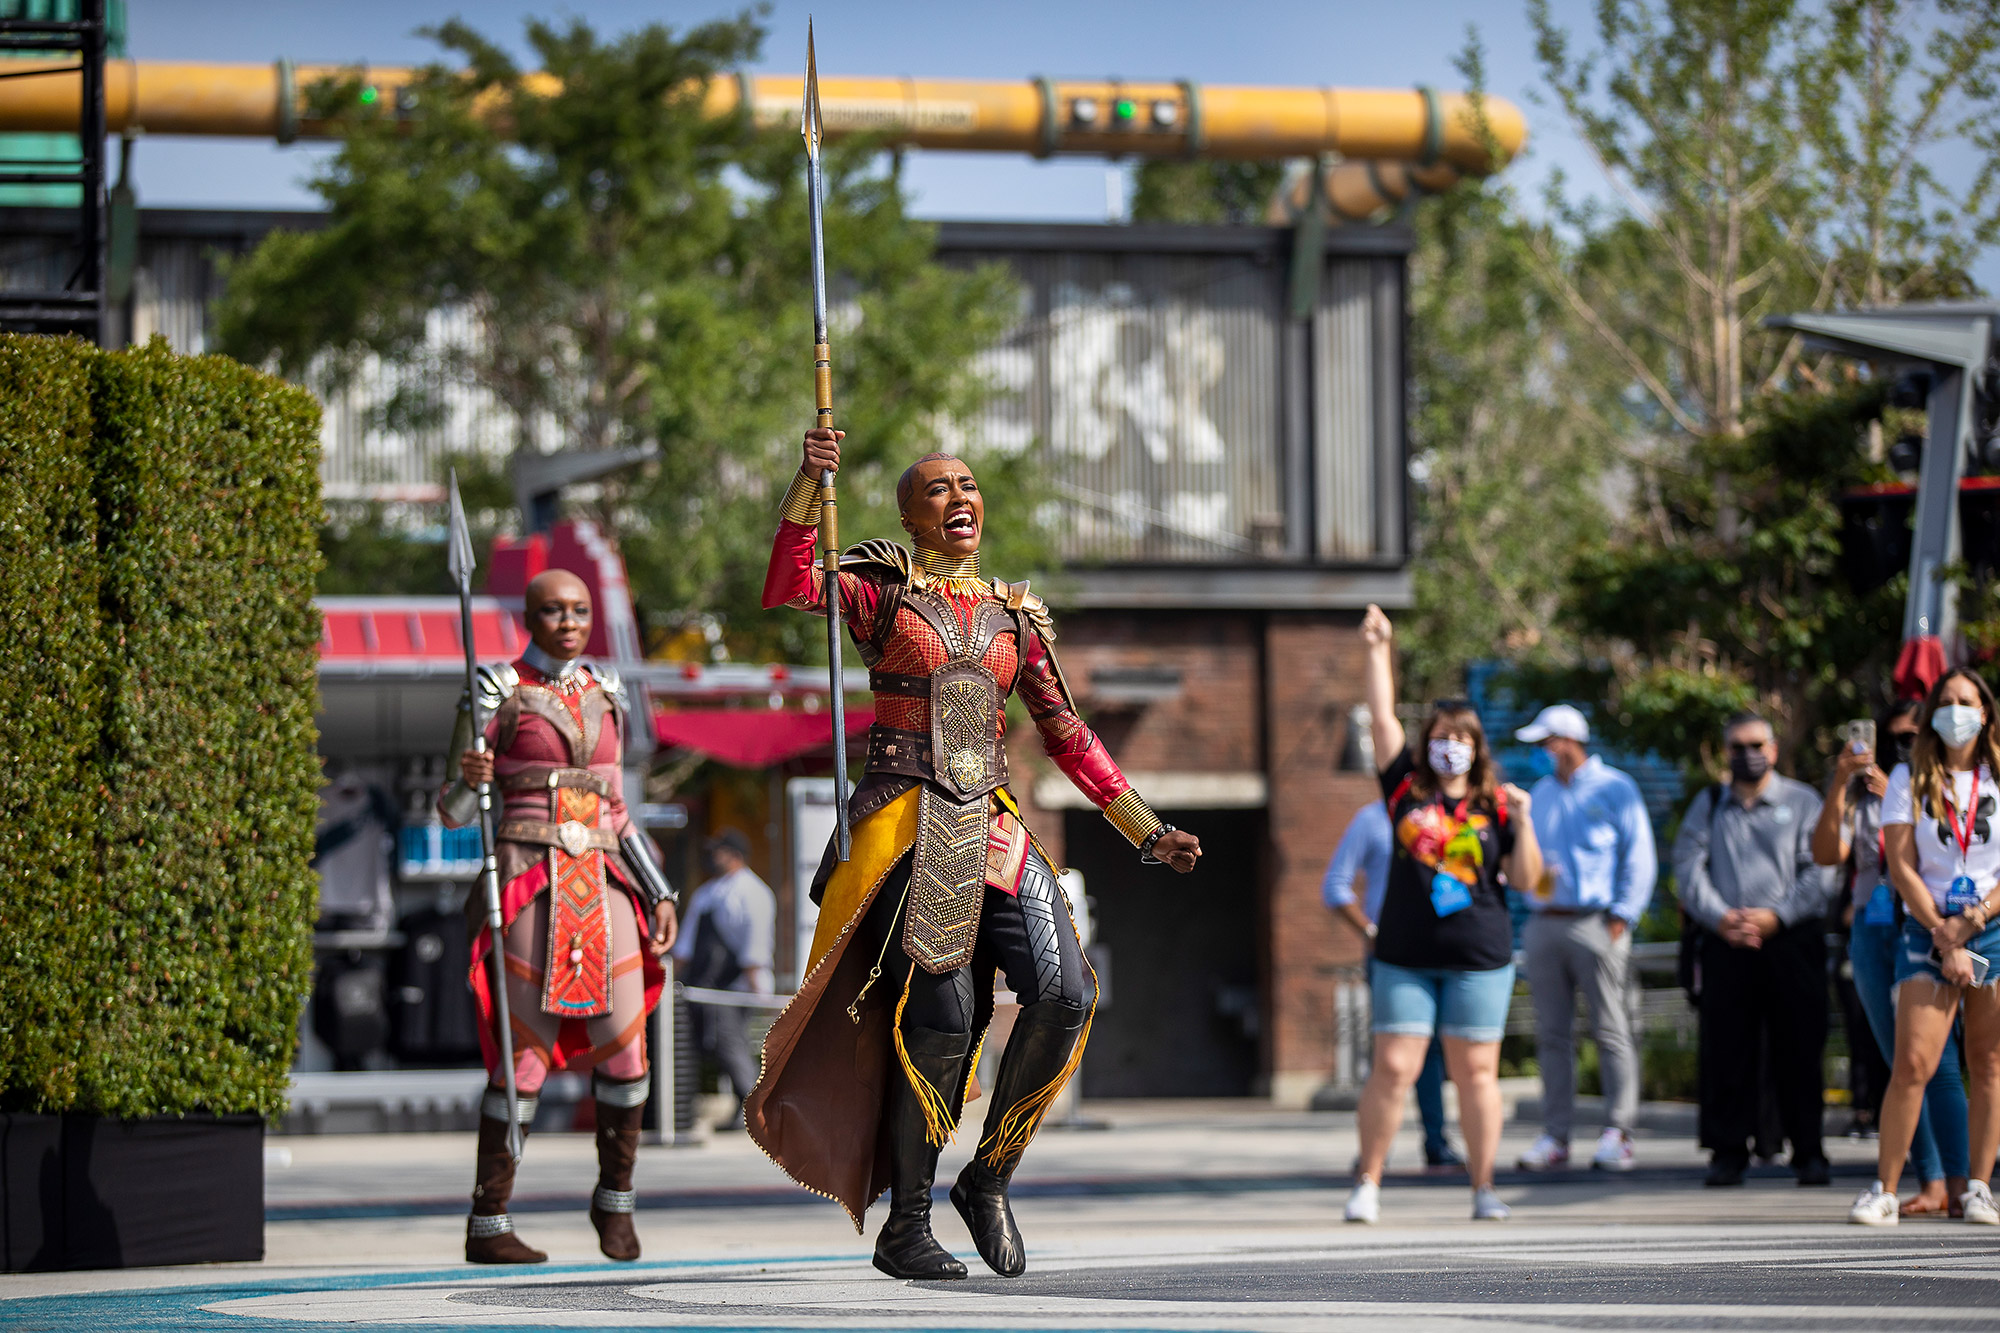 Spear-waving warriors known as Black Panthers Dora Milaje, Wakanda's elite fighting force and the country's royal guard, perform during a media preview of Avengers Campus at California Adventure on Wednesday, June 2, 2021 in Anaheim, CA